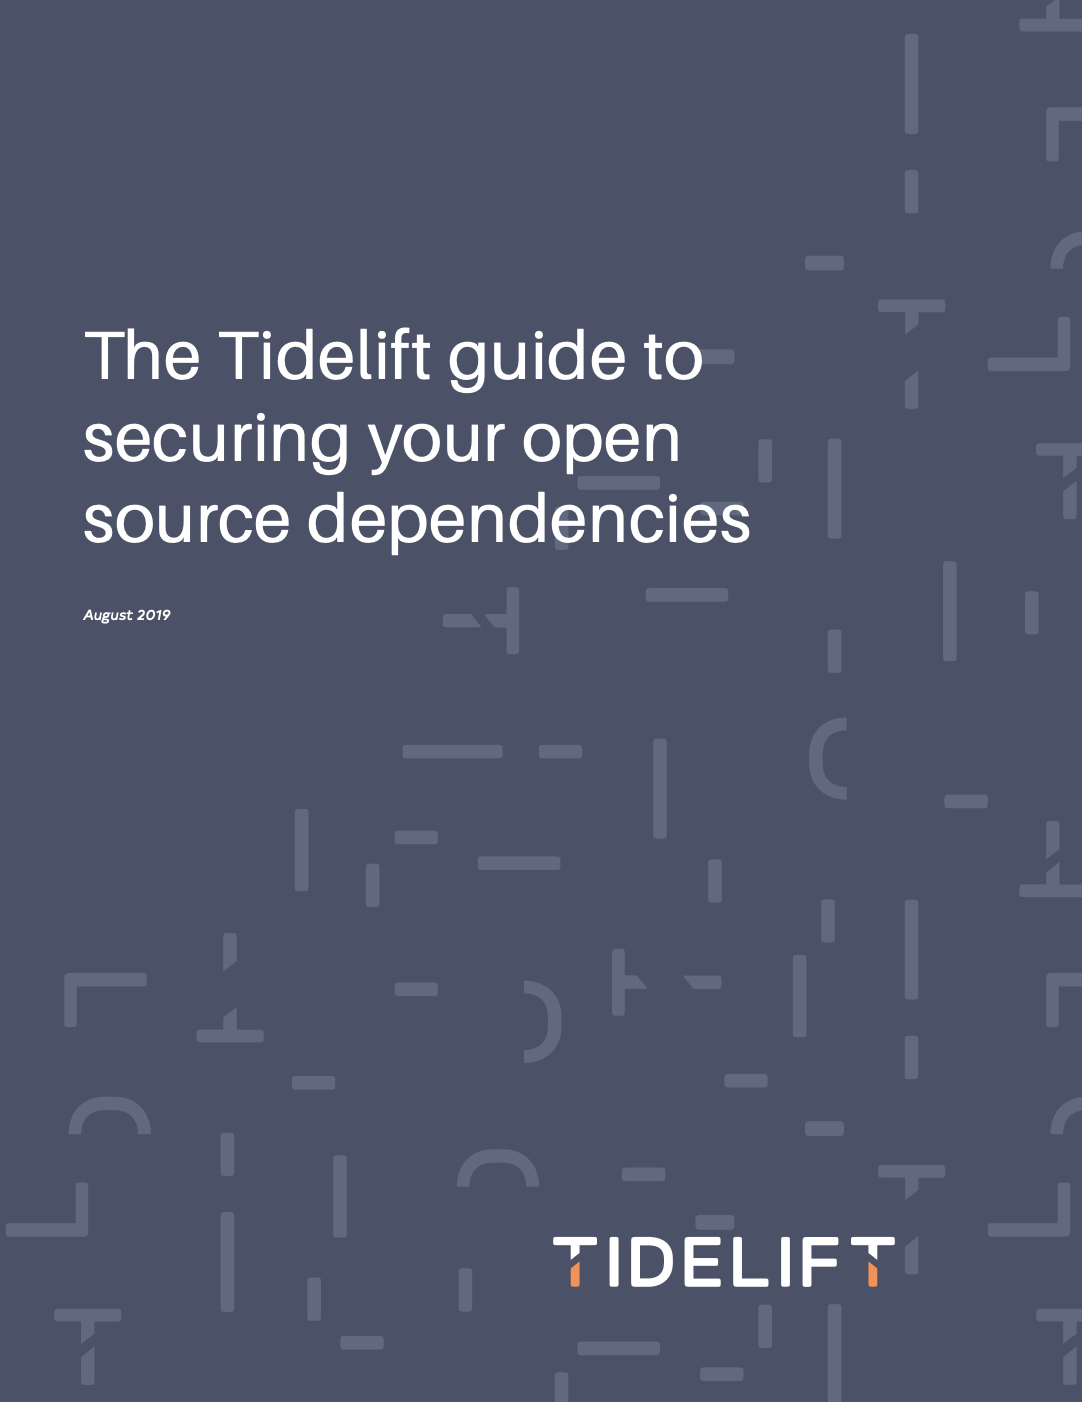 tidelift-guide-to-securing-your-open-source-dependencies